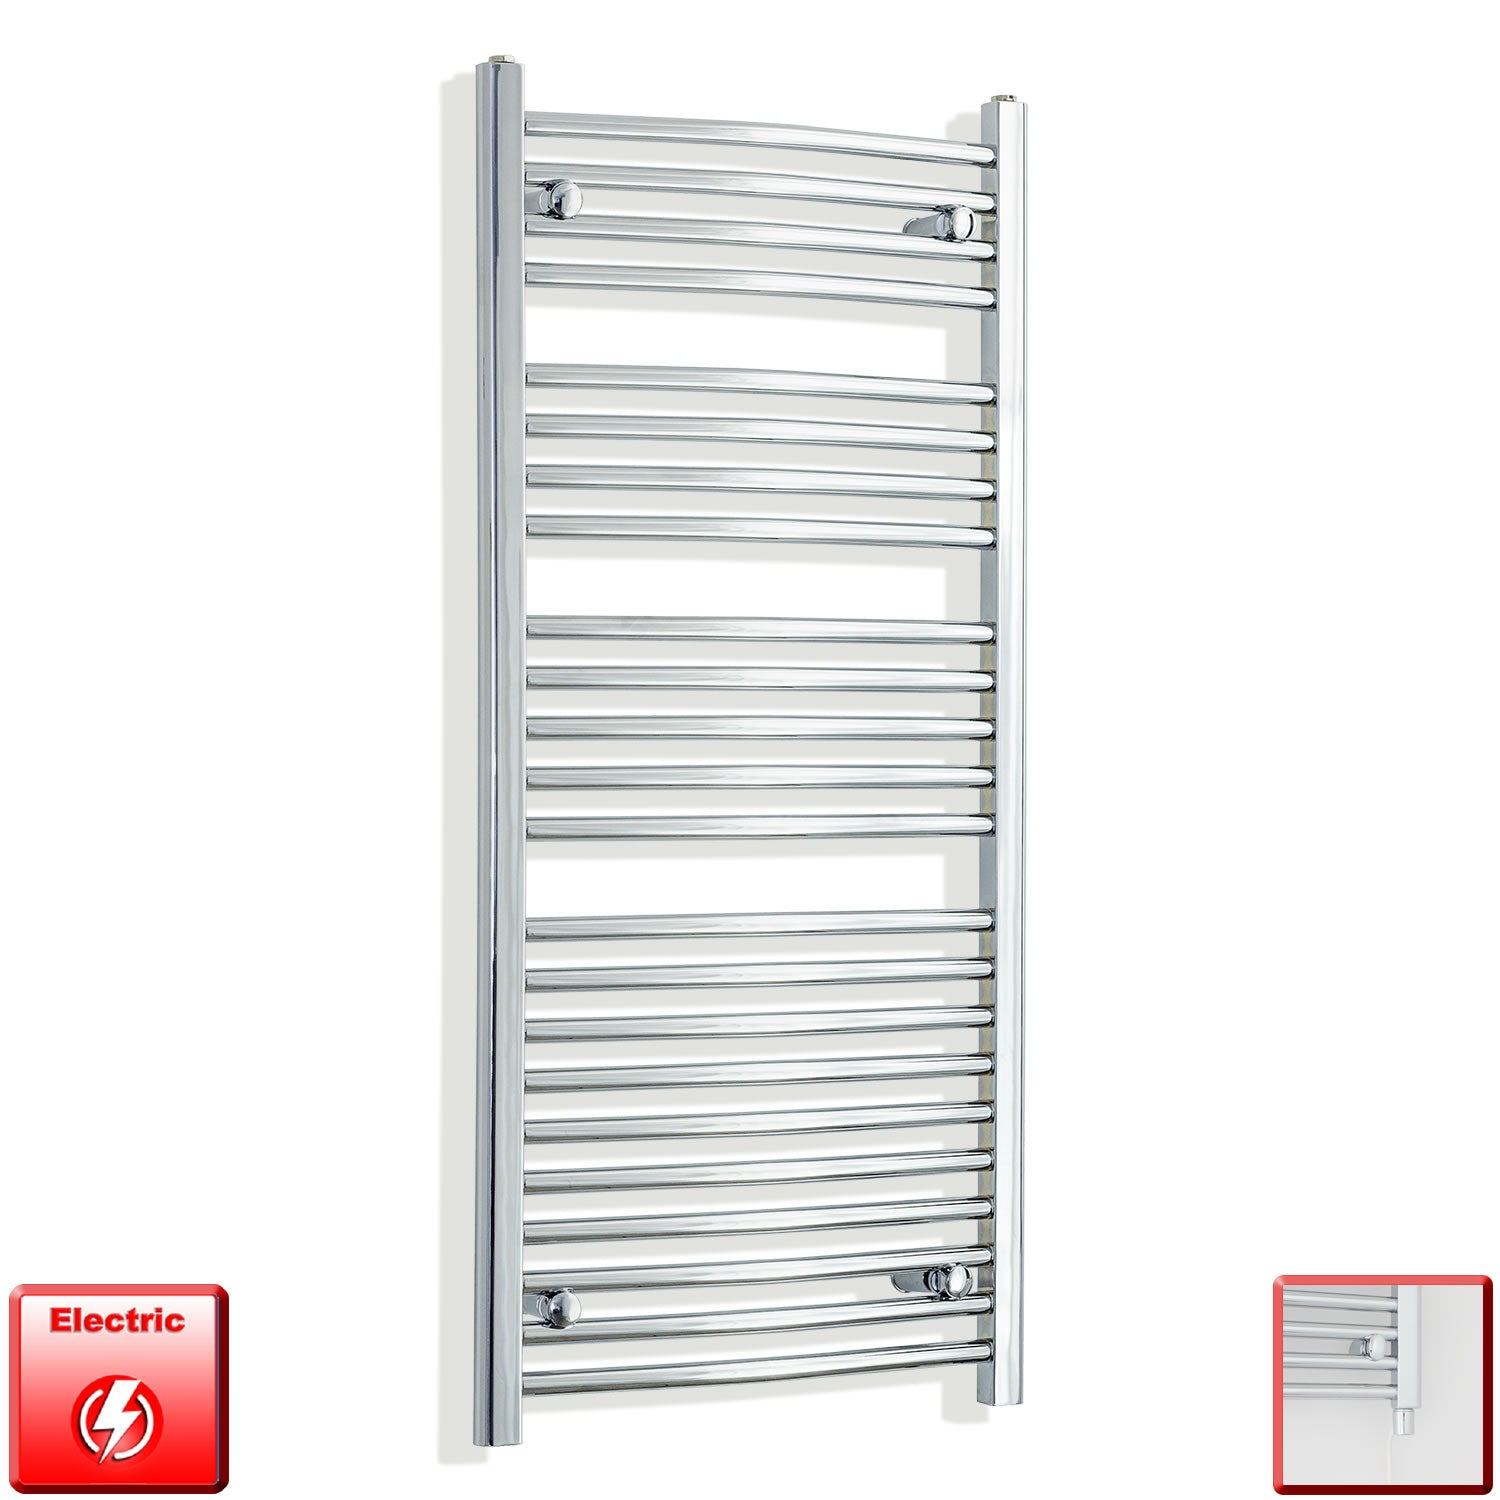 550 x 1200 Flat Chrome Heated Towel Rail Radiator Gas or Electric,Pre-Filled Single Heat Element